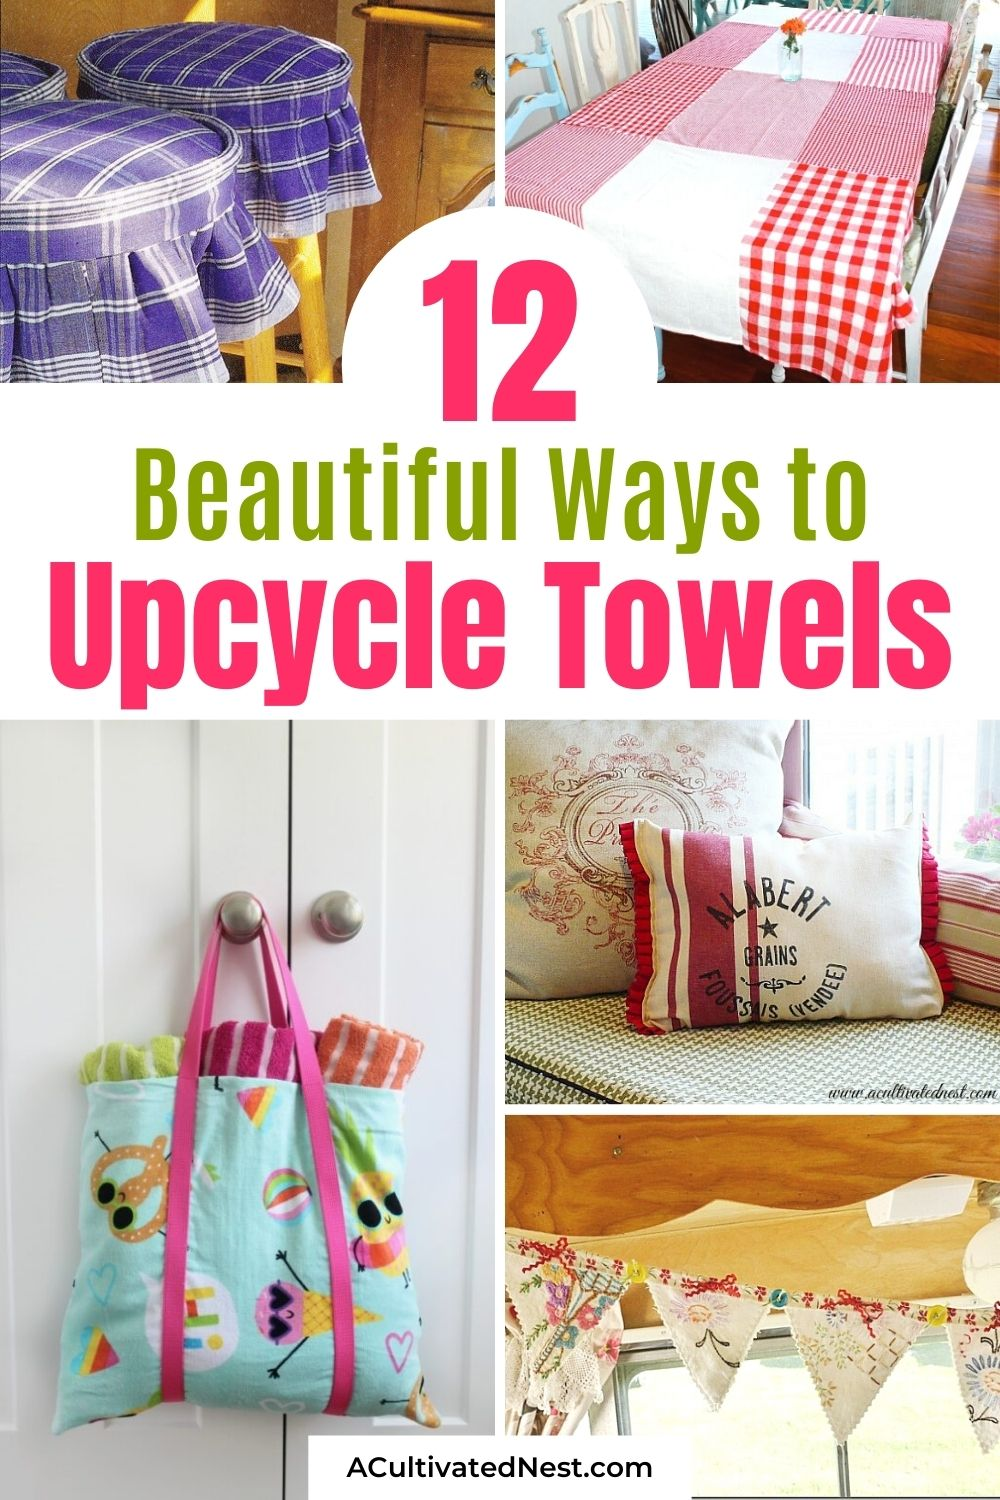 12 Gorgeous Projects Made With Towels- These 12 gorgeous projects made with towels are fun and easy ways to repurpose your old towels! These upcycling DIY projects are sure to inspire you! | sewing projects, upcycle old towels, #sewingProjects #upcycling #reuse #repurpose #ACultivatedNest